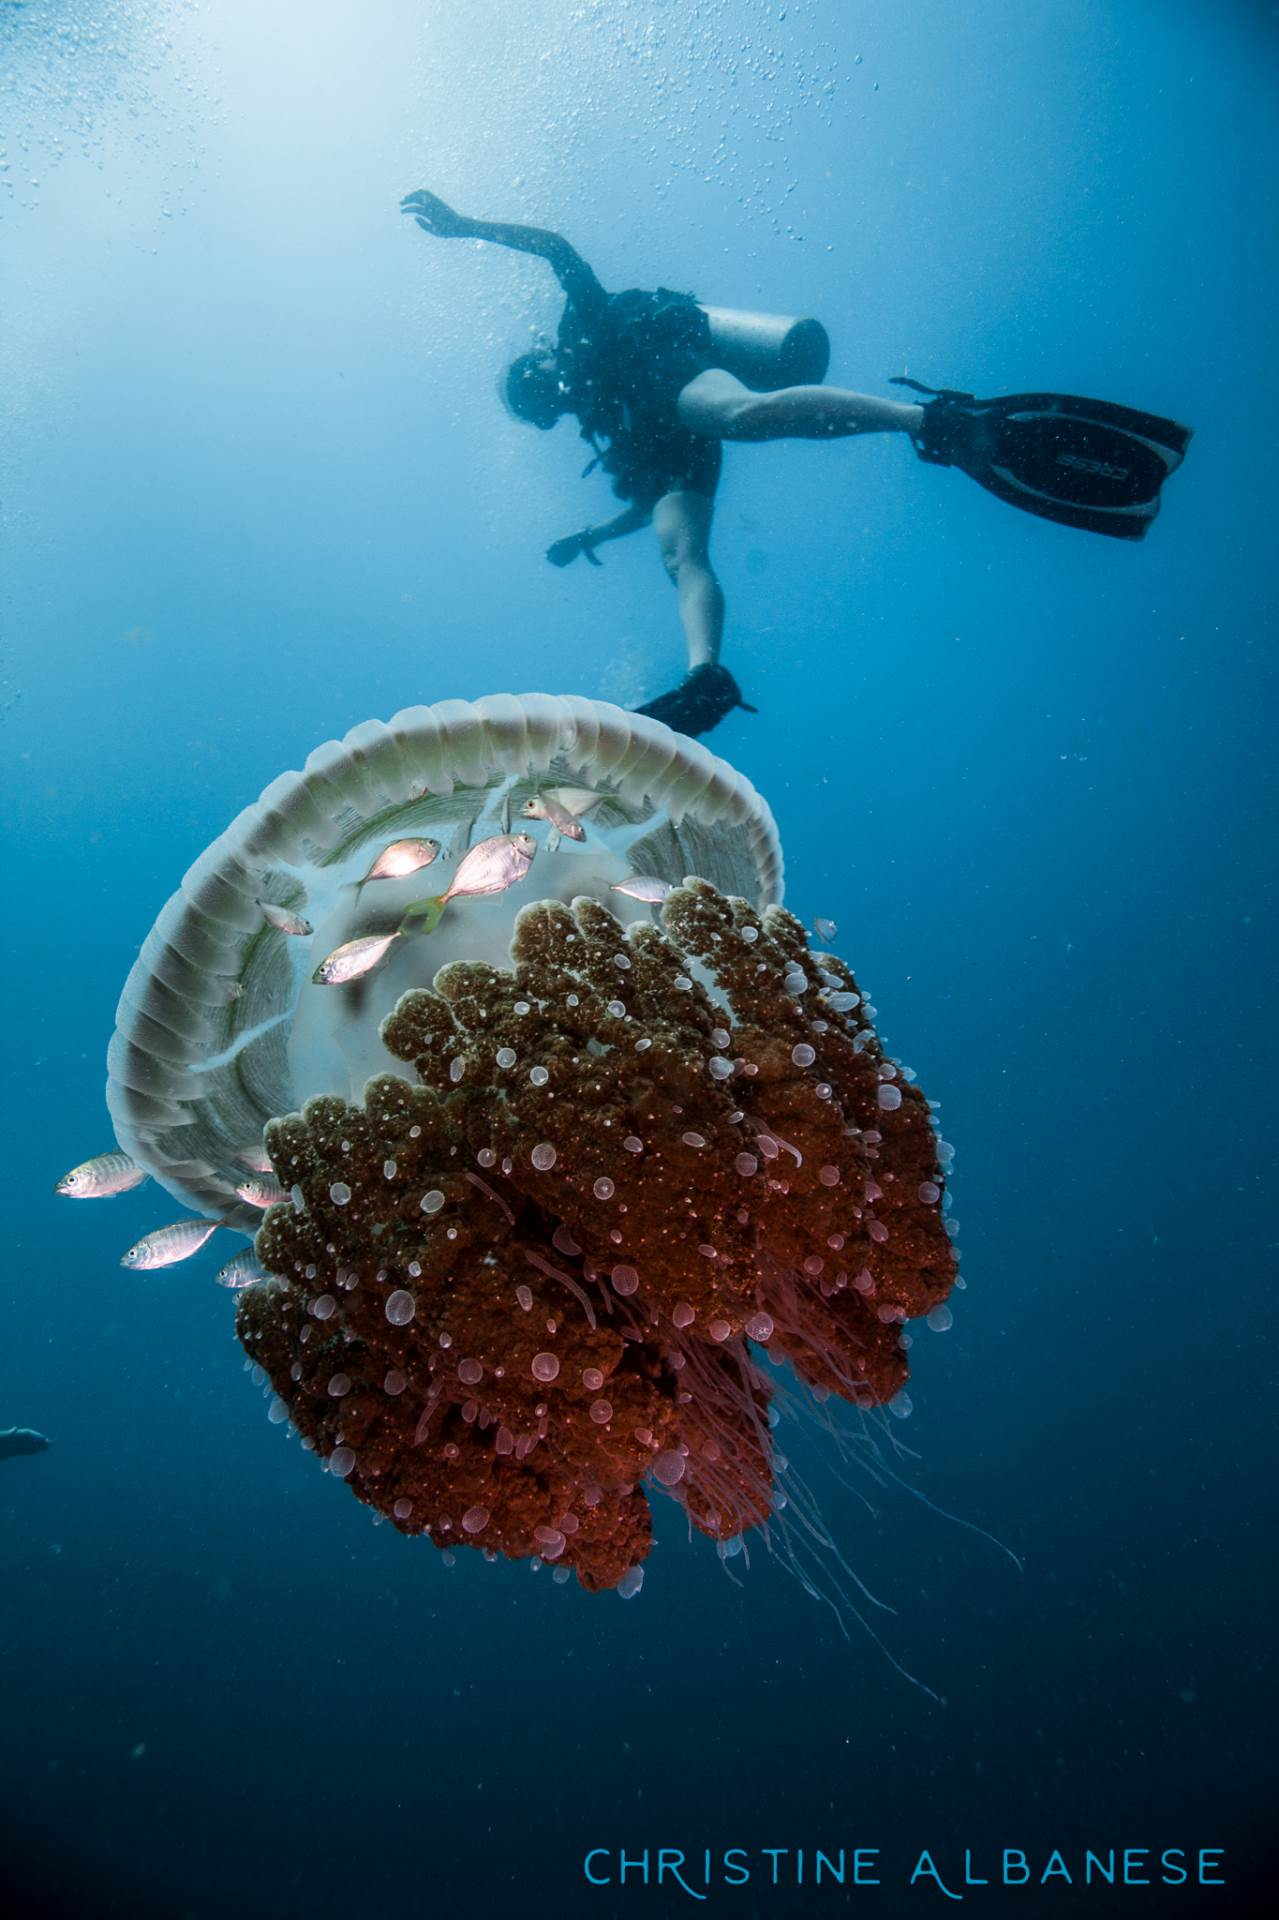 A diver observes a jellyfish from above at Sail Rock. This was shot in December when the visibility around Koh Tao isn't so great - but we managed to spot this large jellyfish in the blue just off the main pinnacle.